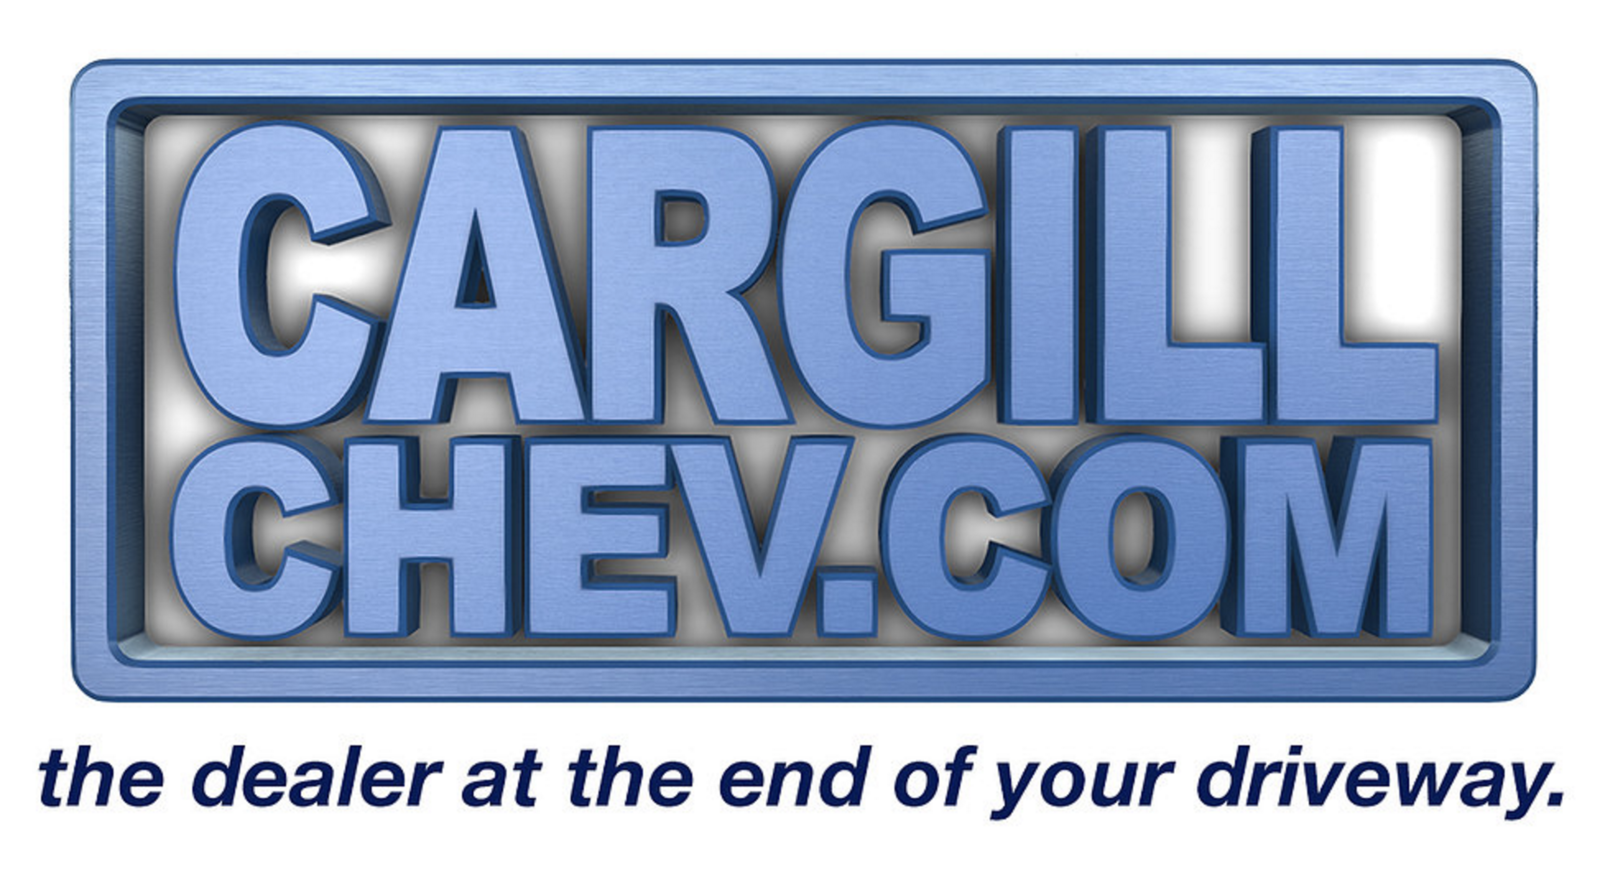 Cargill Chevrolet Putnam Ct Read Consumer Reviews Browse Used And New Cars For Sale